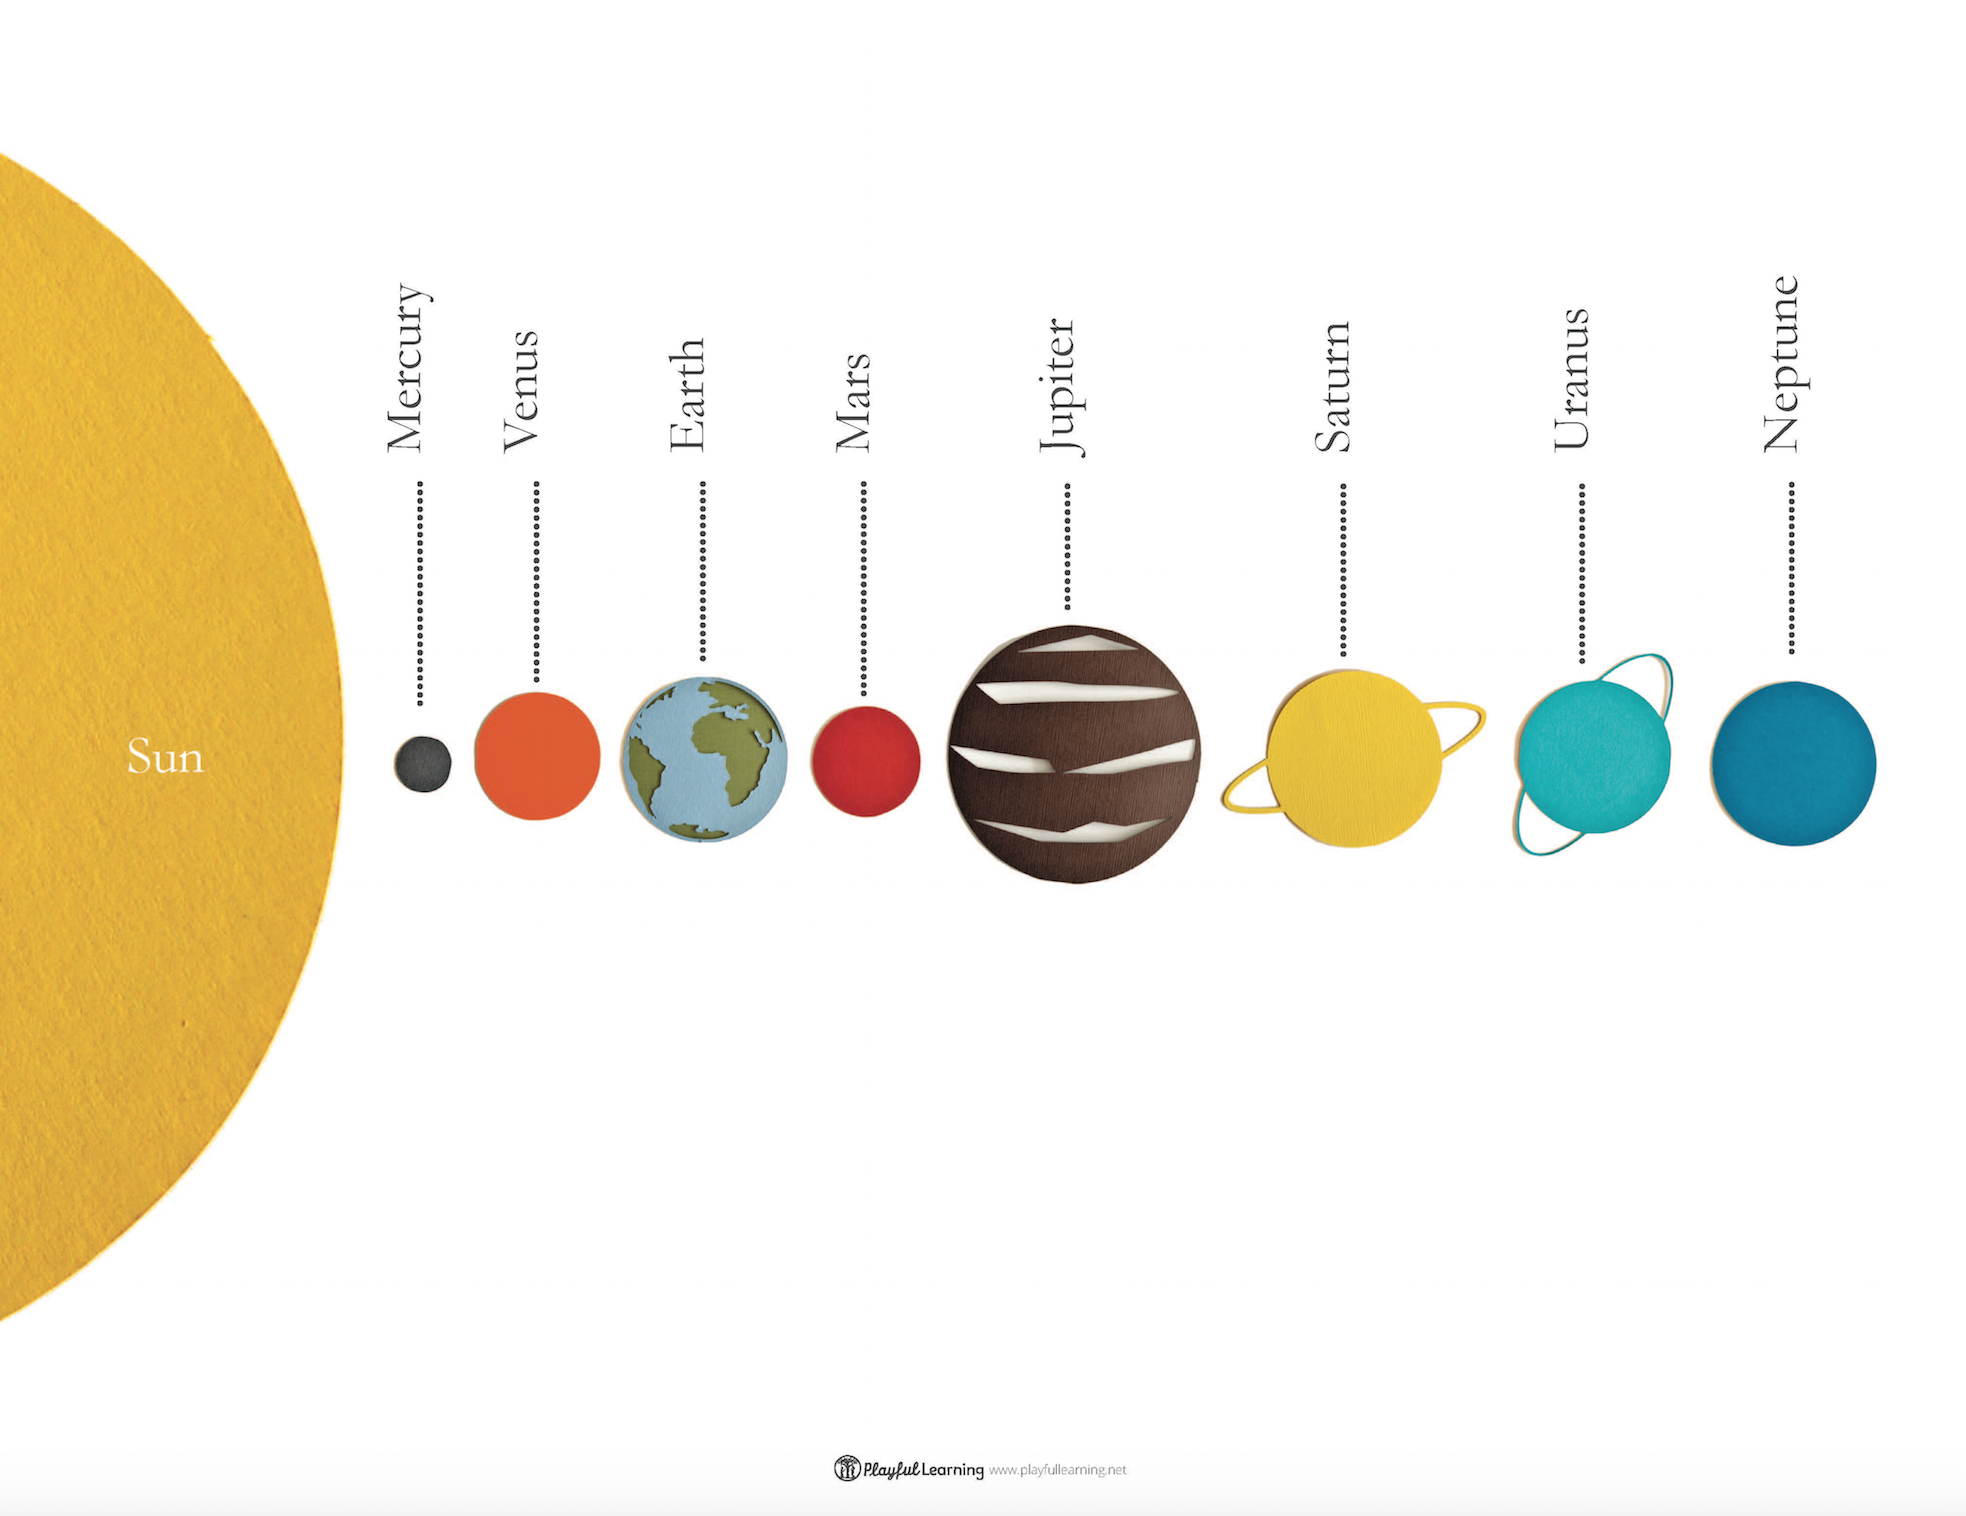 solar system learning - photo #15